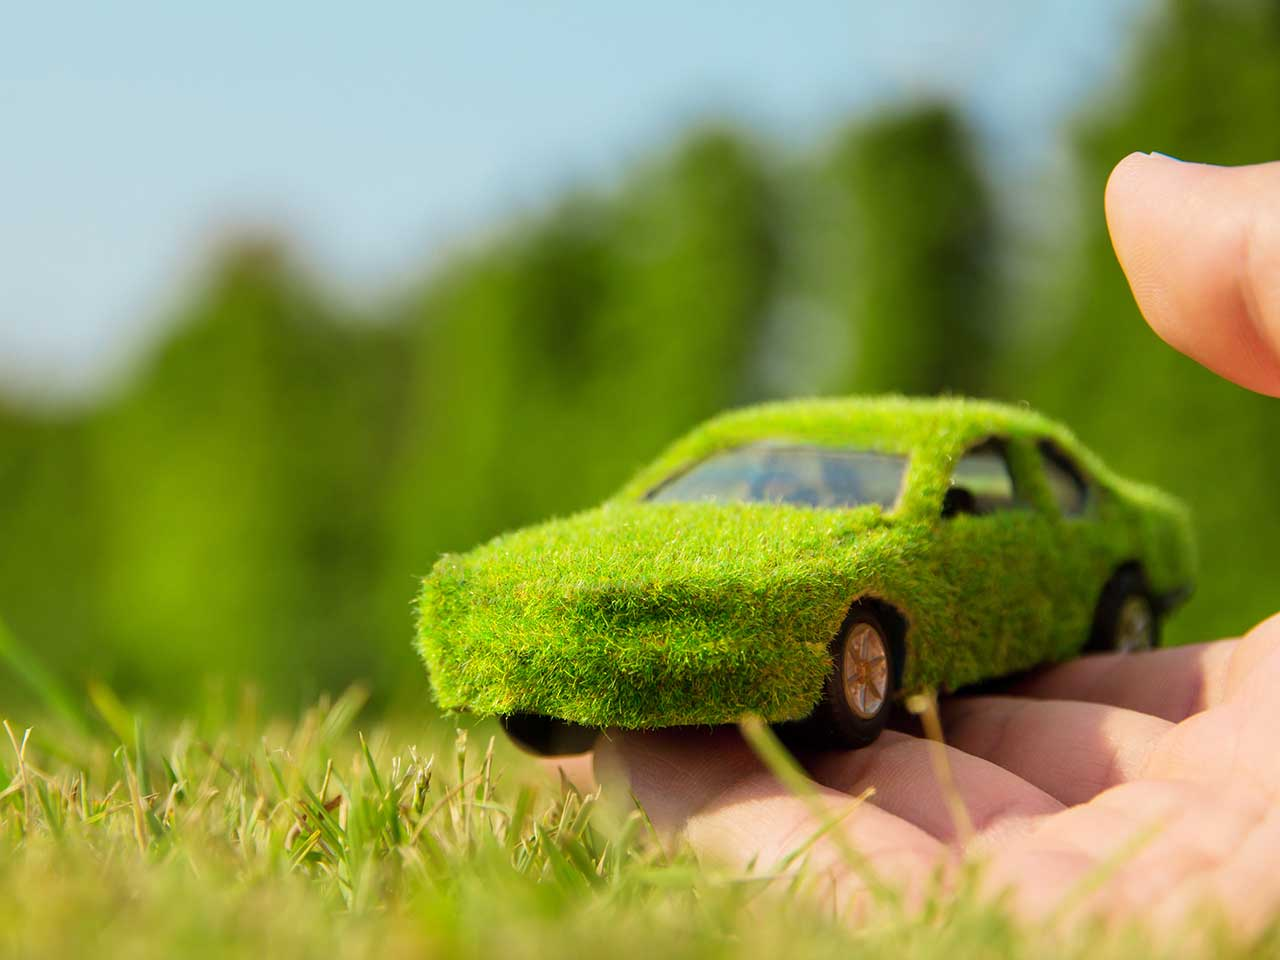 Car covered in grass to show environemntally friendly motoring